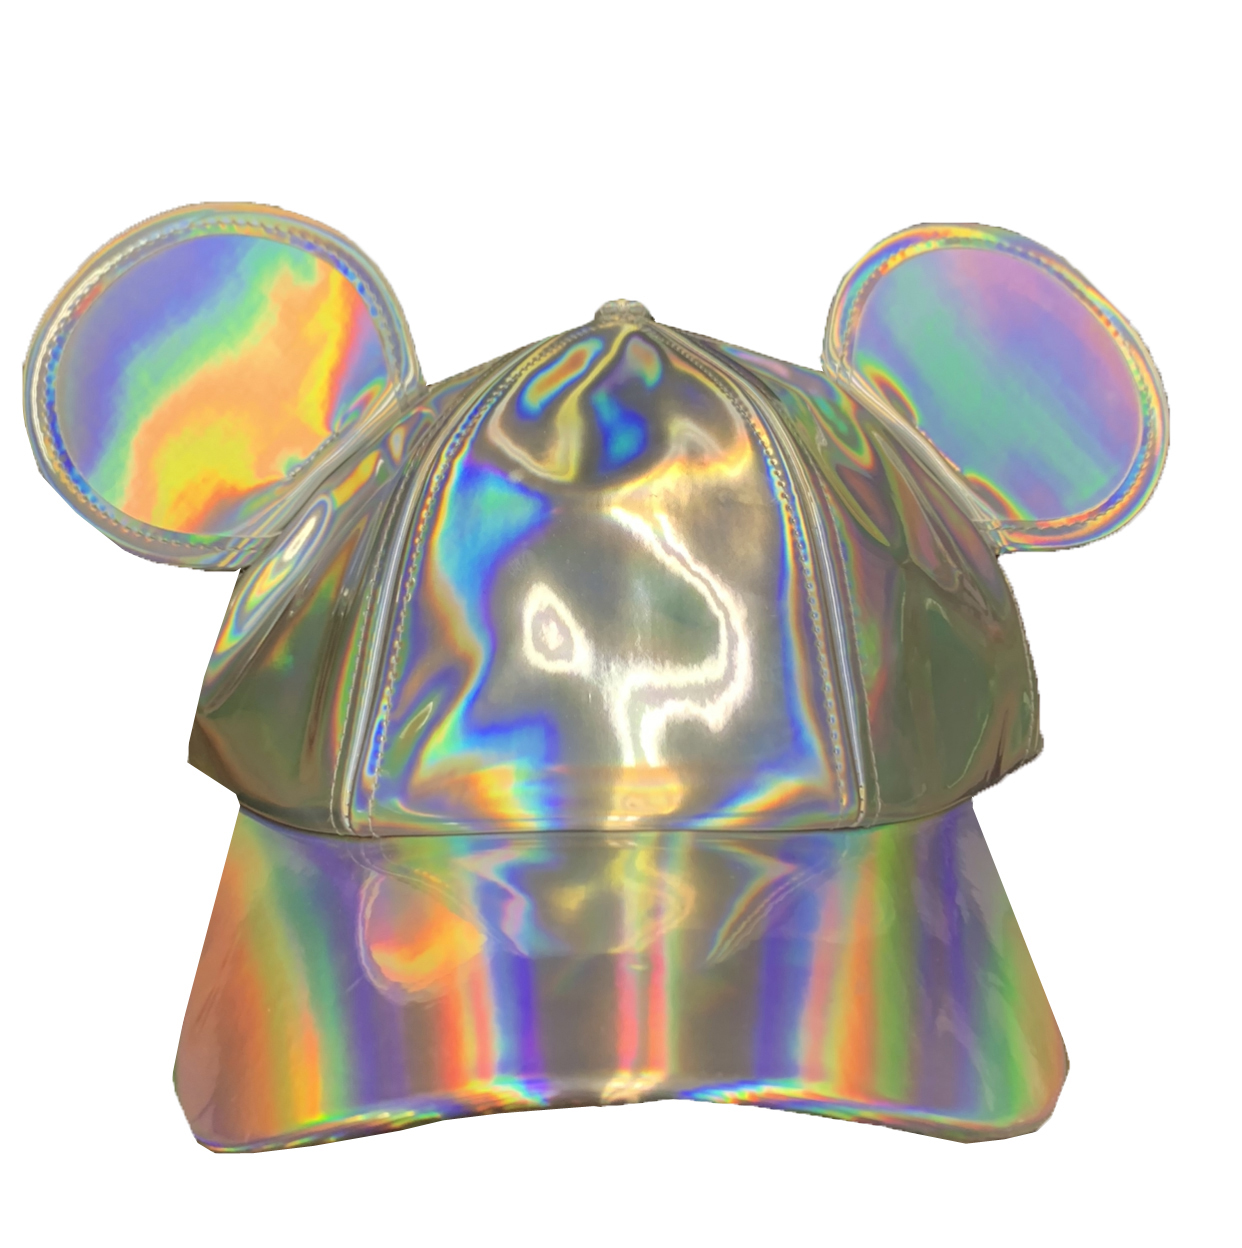 Disney Hat - Baseball Cap - Epcot - Mickey Mouse Metallic